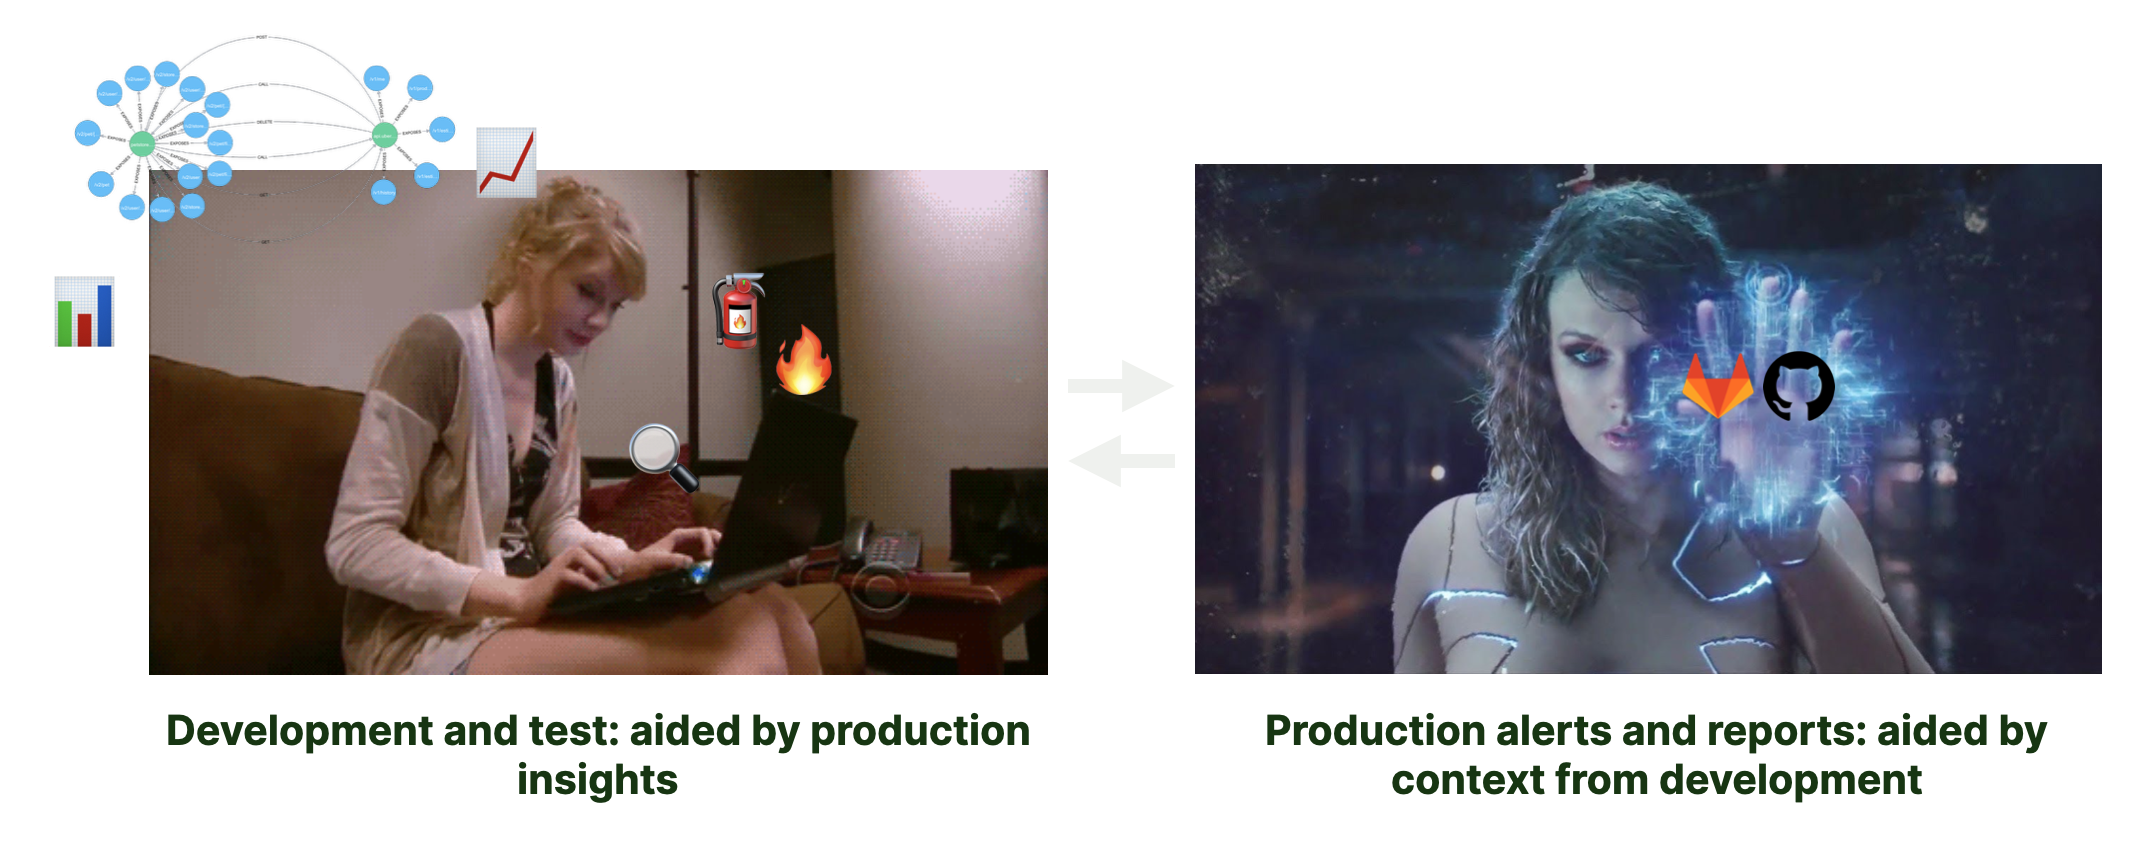 Taylor Swift coding against production